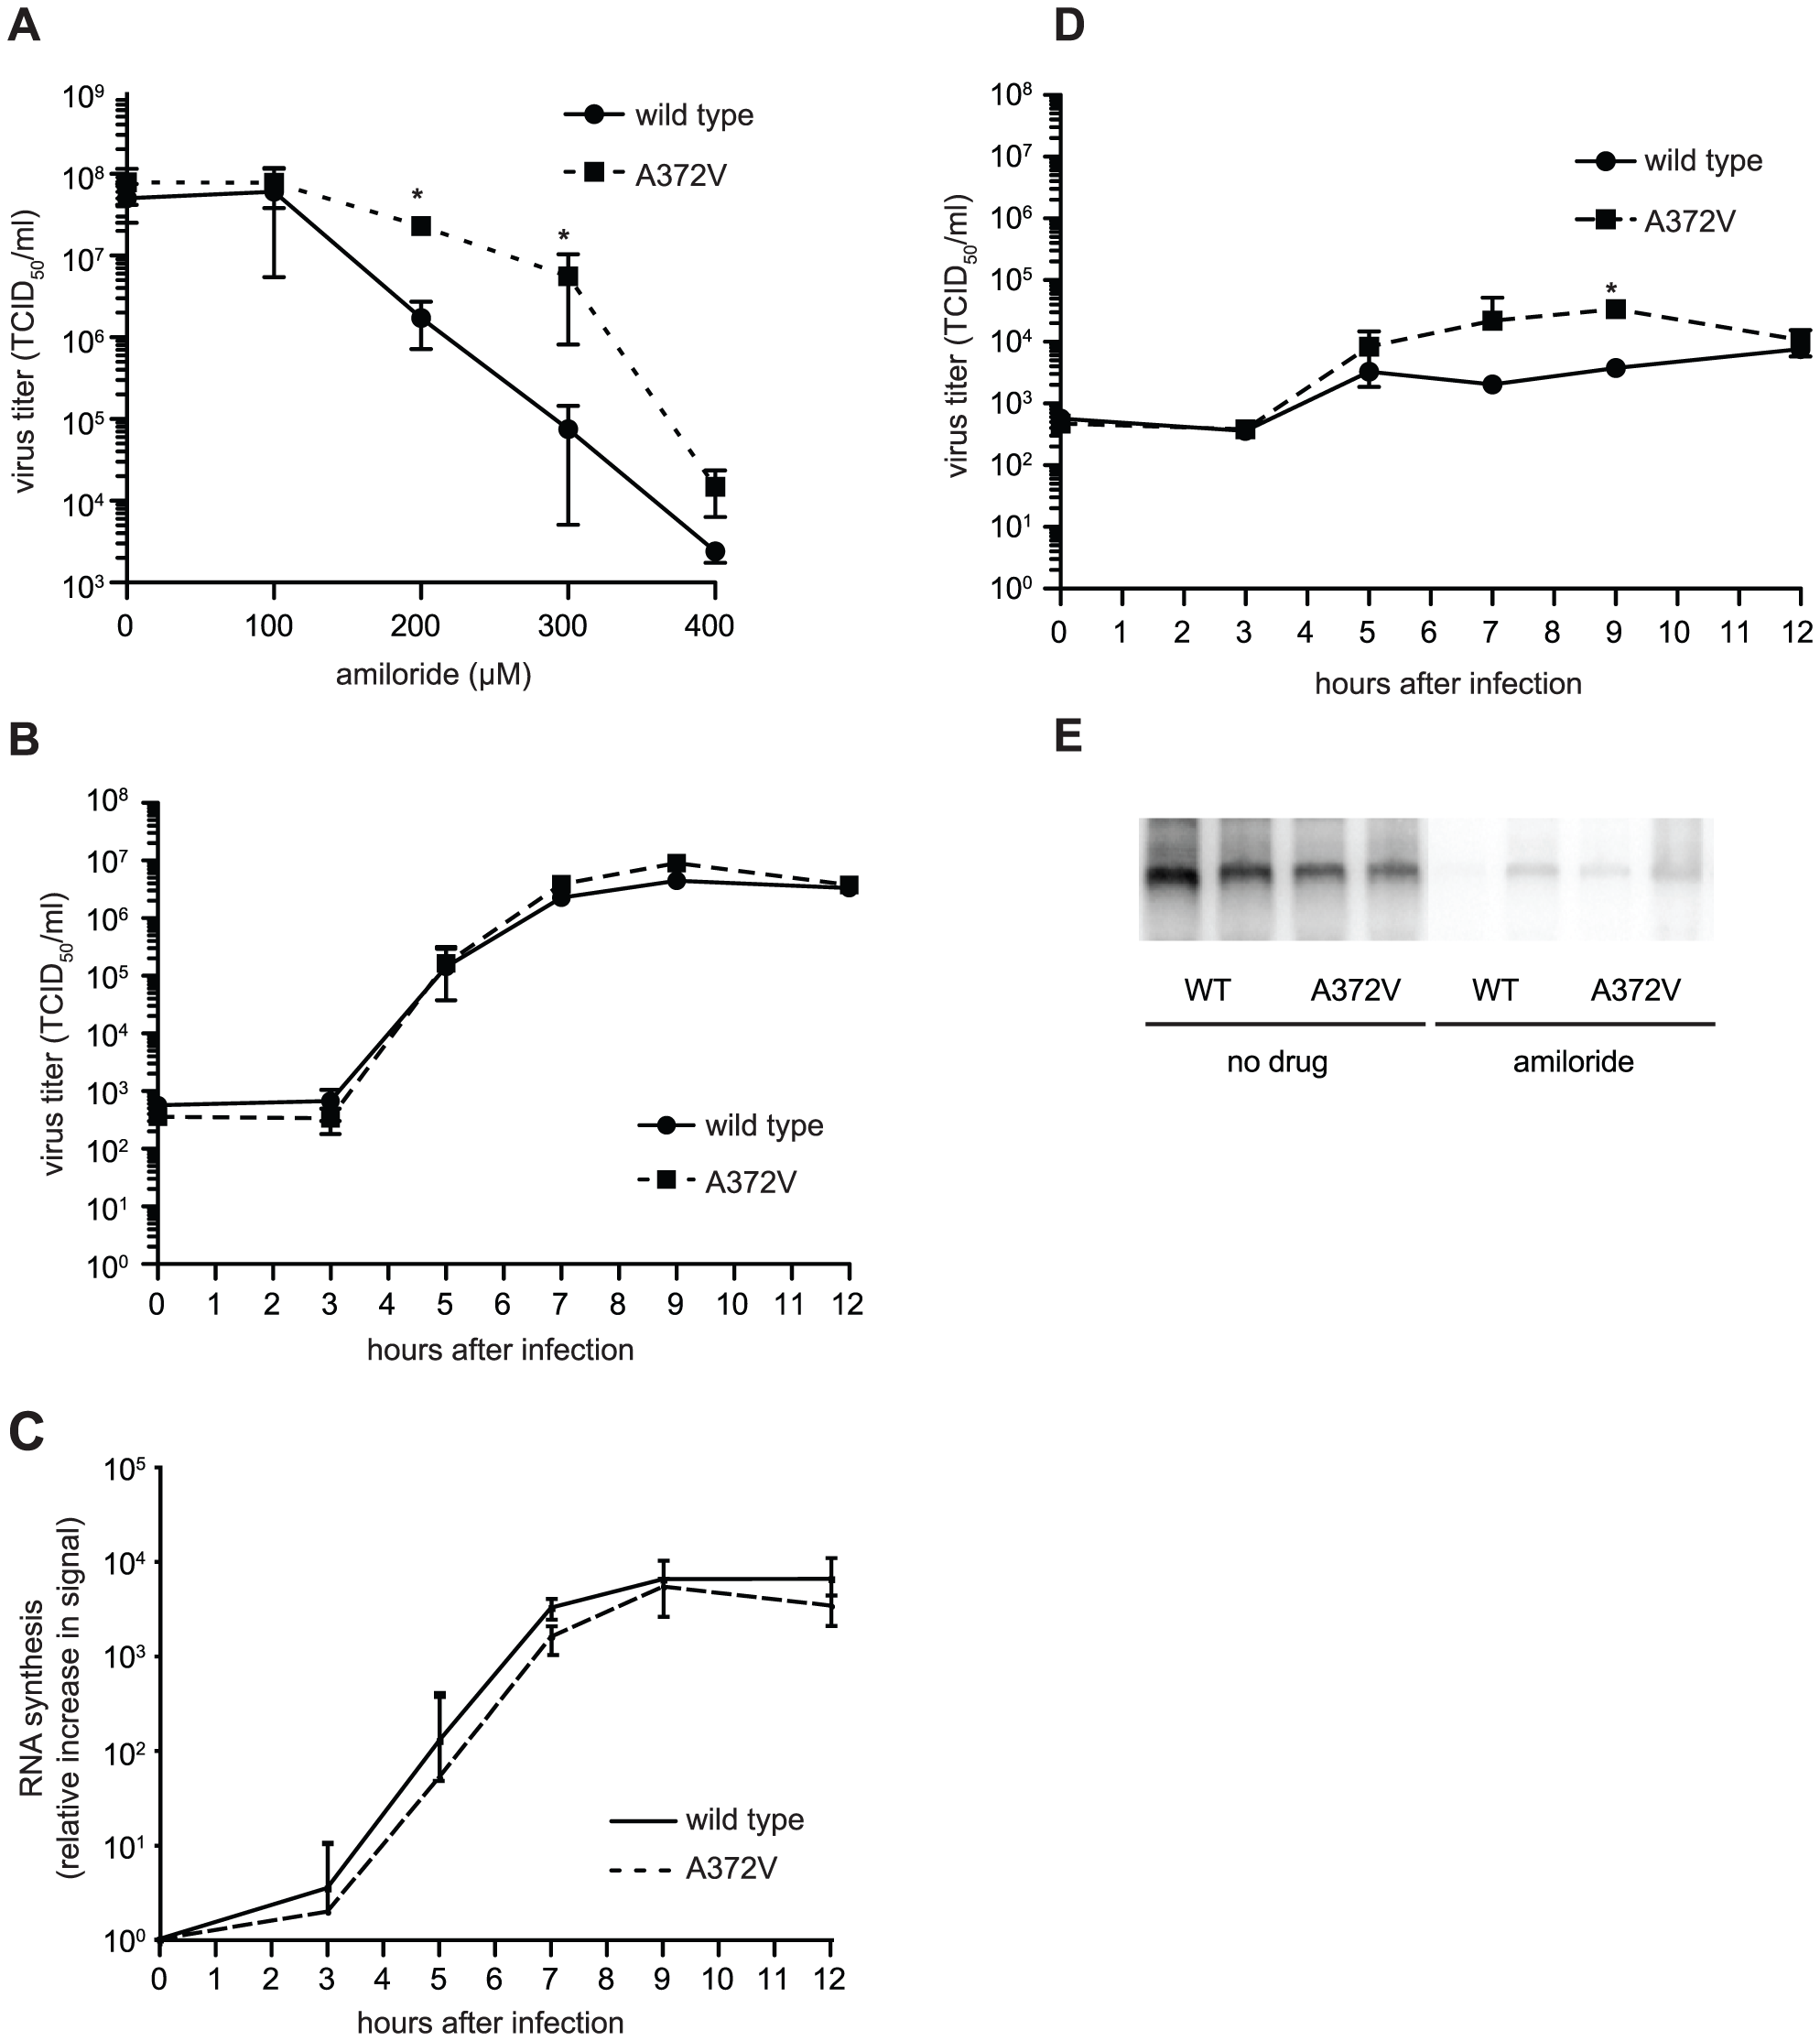 A372V resistance to amiloride does not involve improved replication.